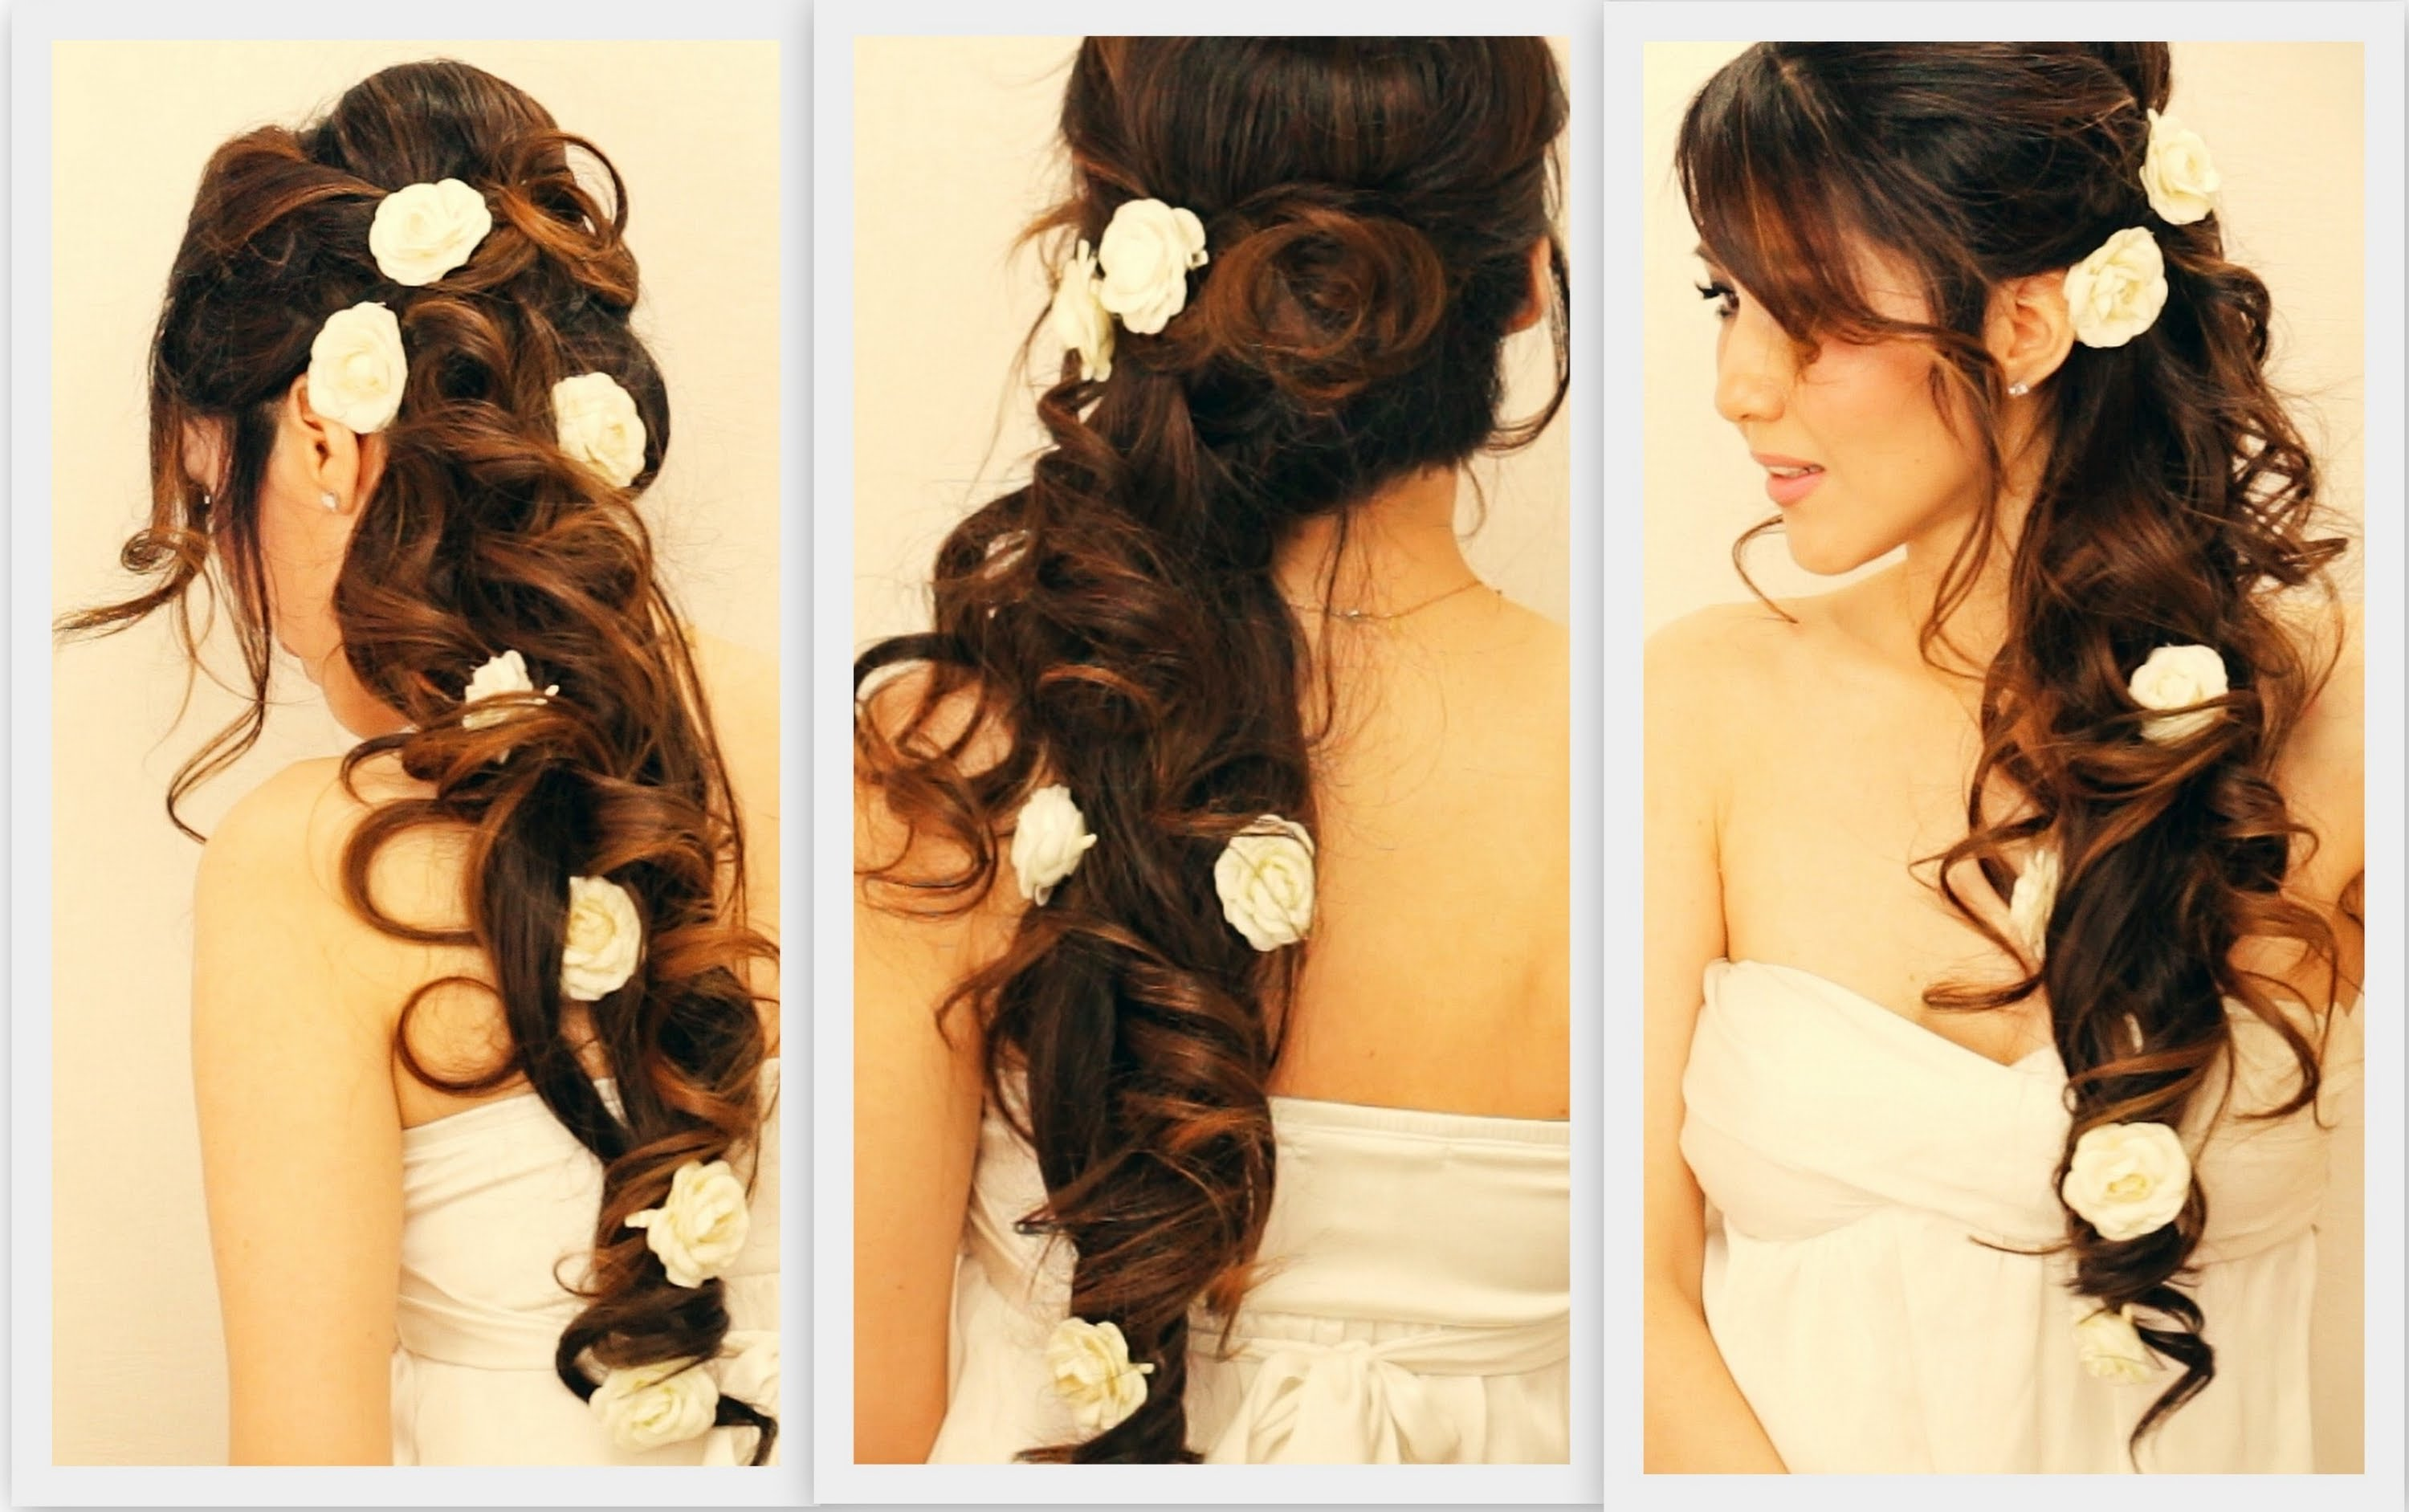 How To Make Romantic Half Up Updo Hairstyle With Curls For Homecoming Prom Bridal Party Step By Step Diy Tutorial Instructions How To Instructions